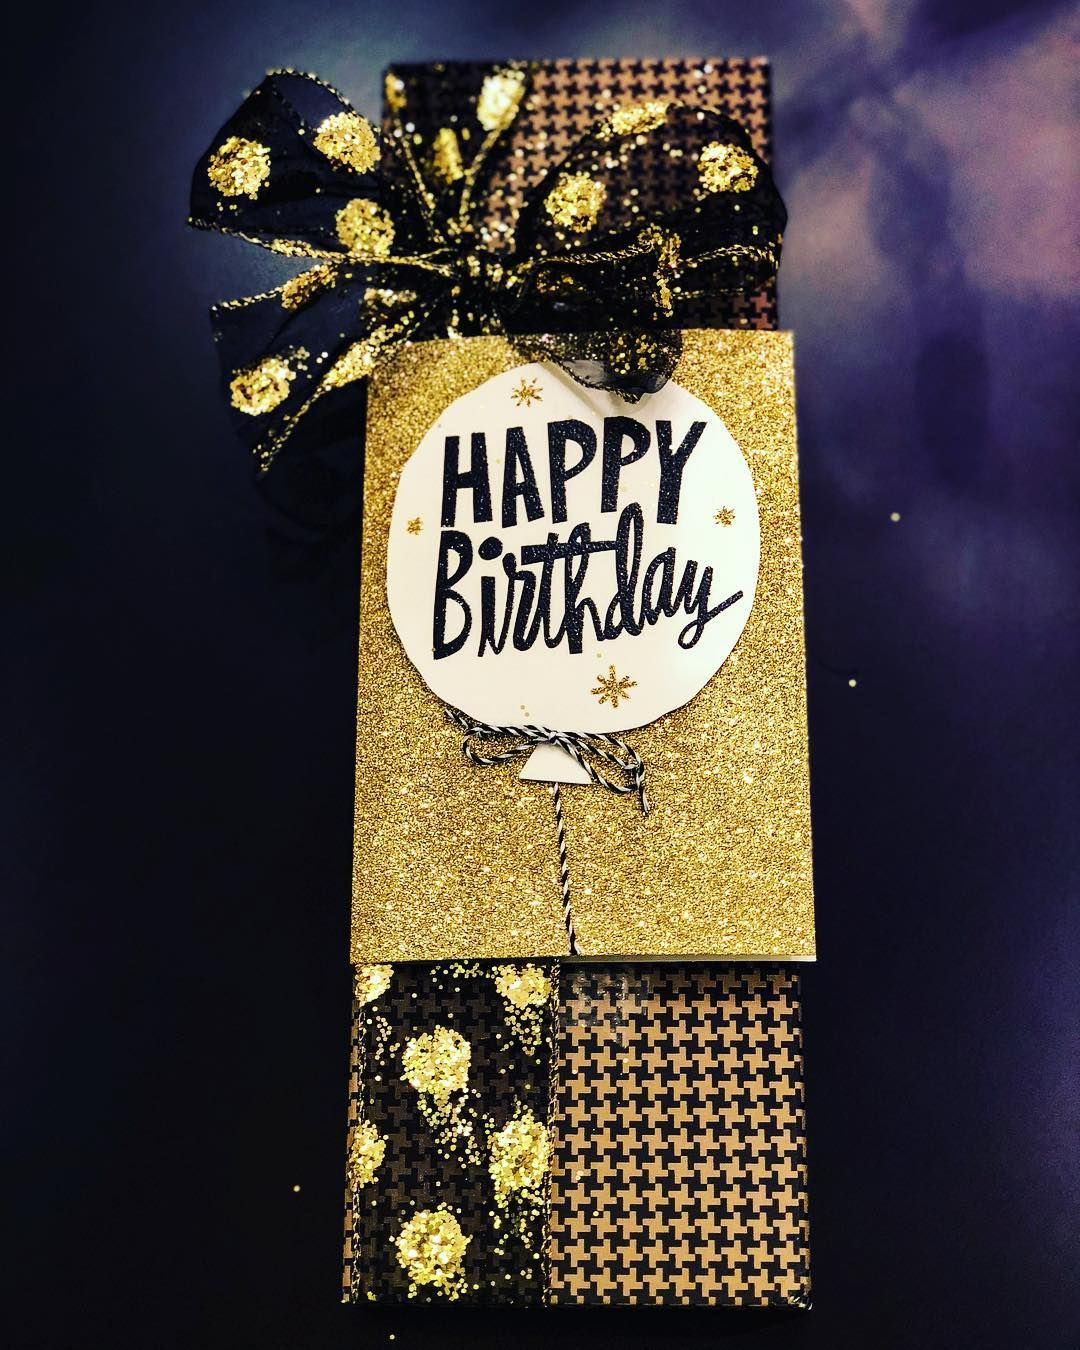 50th Birthday Gift Wrapping 50 Shades Of Gold 50thbirthday Goldenbirthday Classywrapping Harryrosen Creative